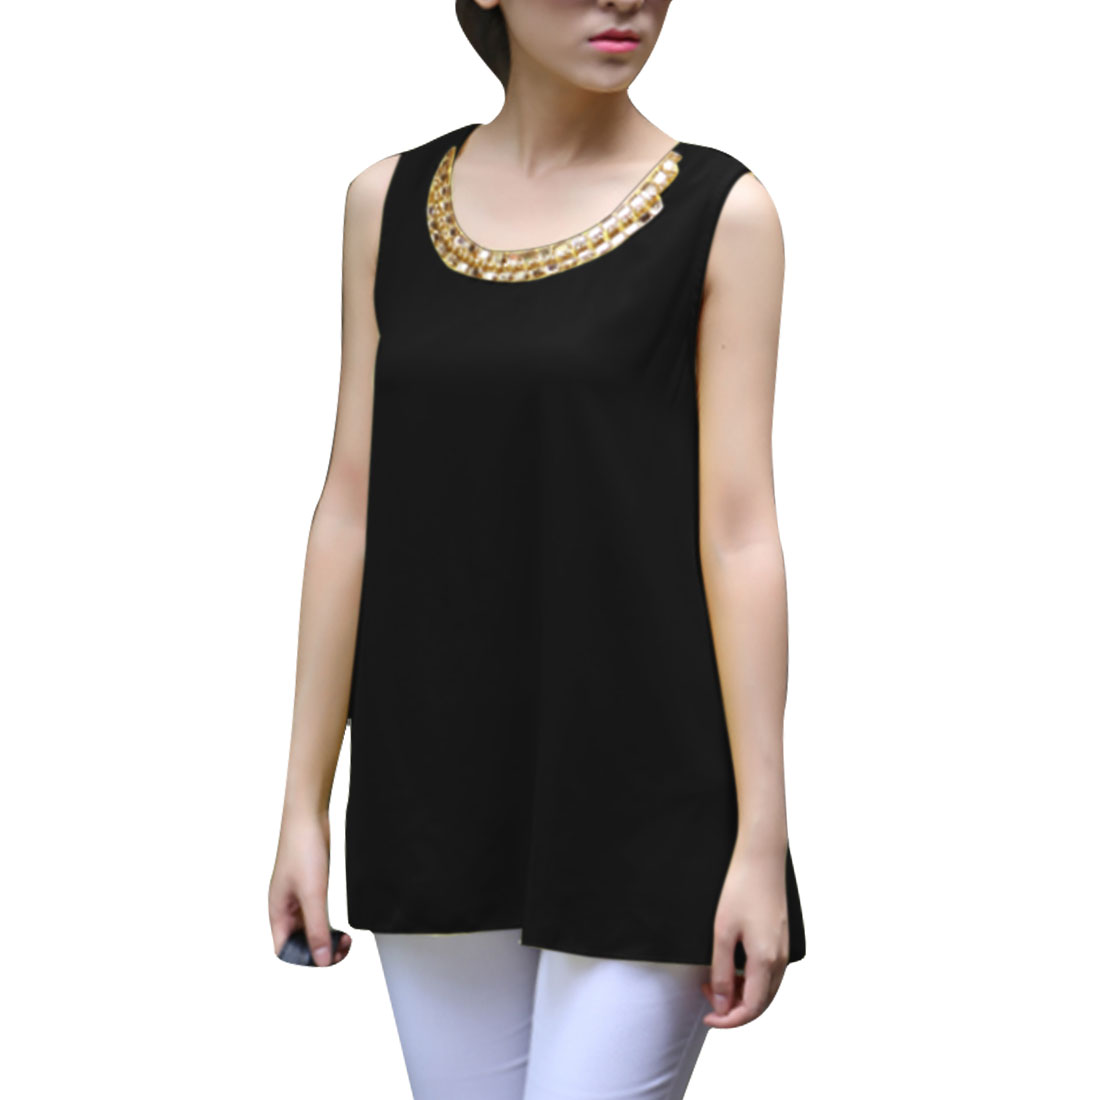 Lady Round Neck Faux Diamond Decor Fashion Tops Blouses Black S